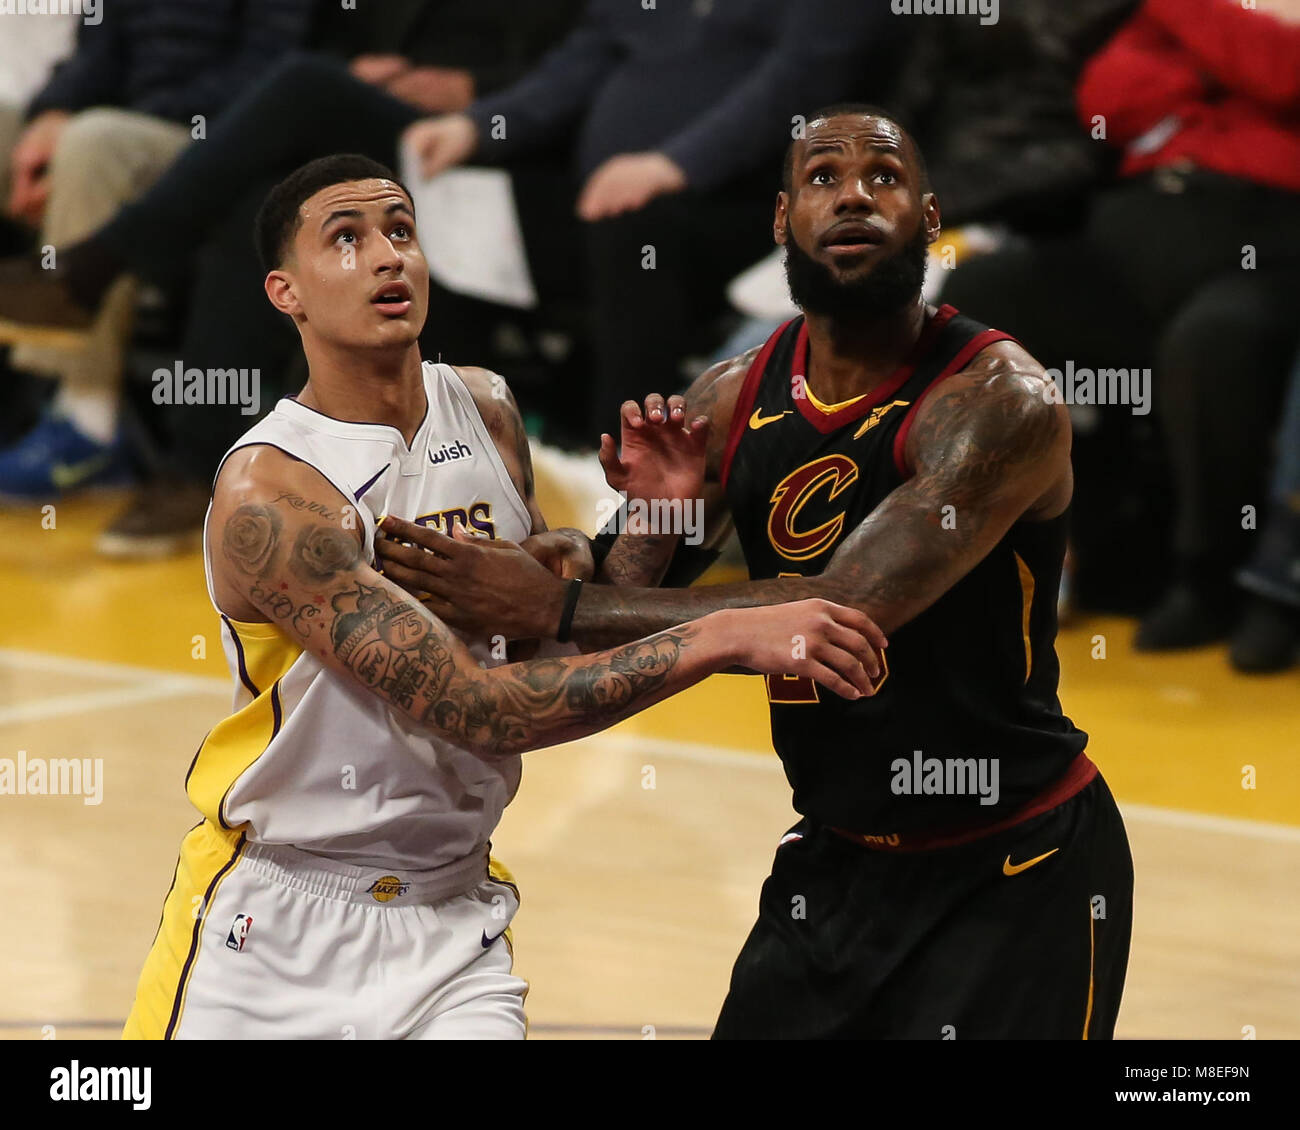 Cavaliers Vs Lakers 2018 >> Los Angeles Ca Usa 11th Mar 2018 Cleveland Cavaliers